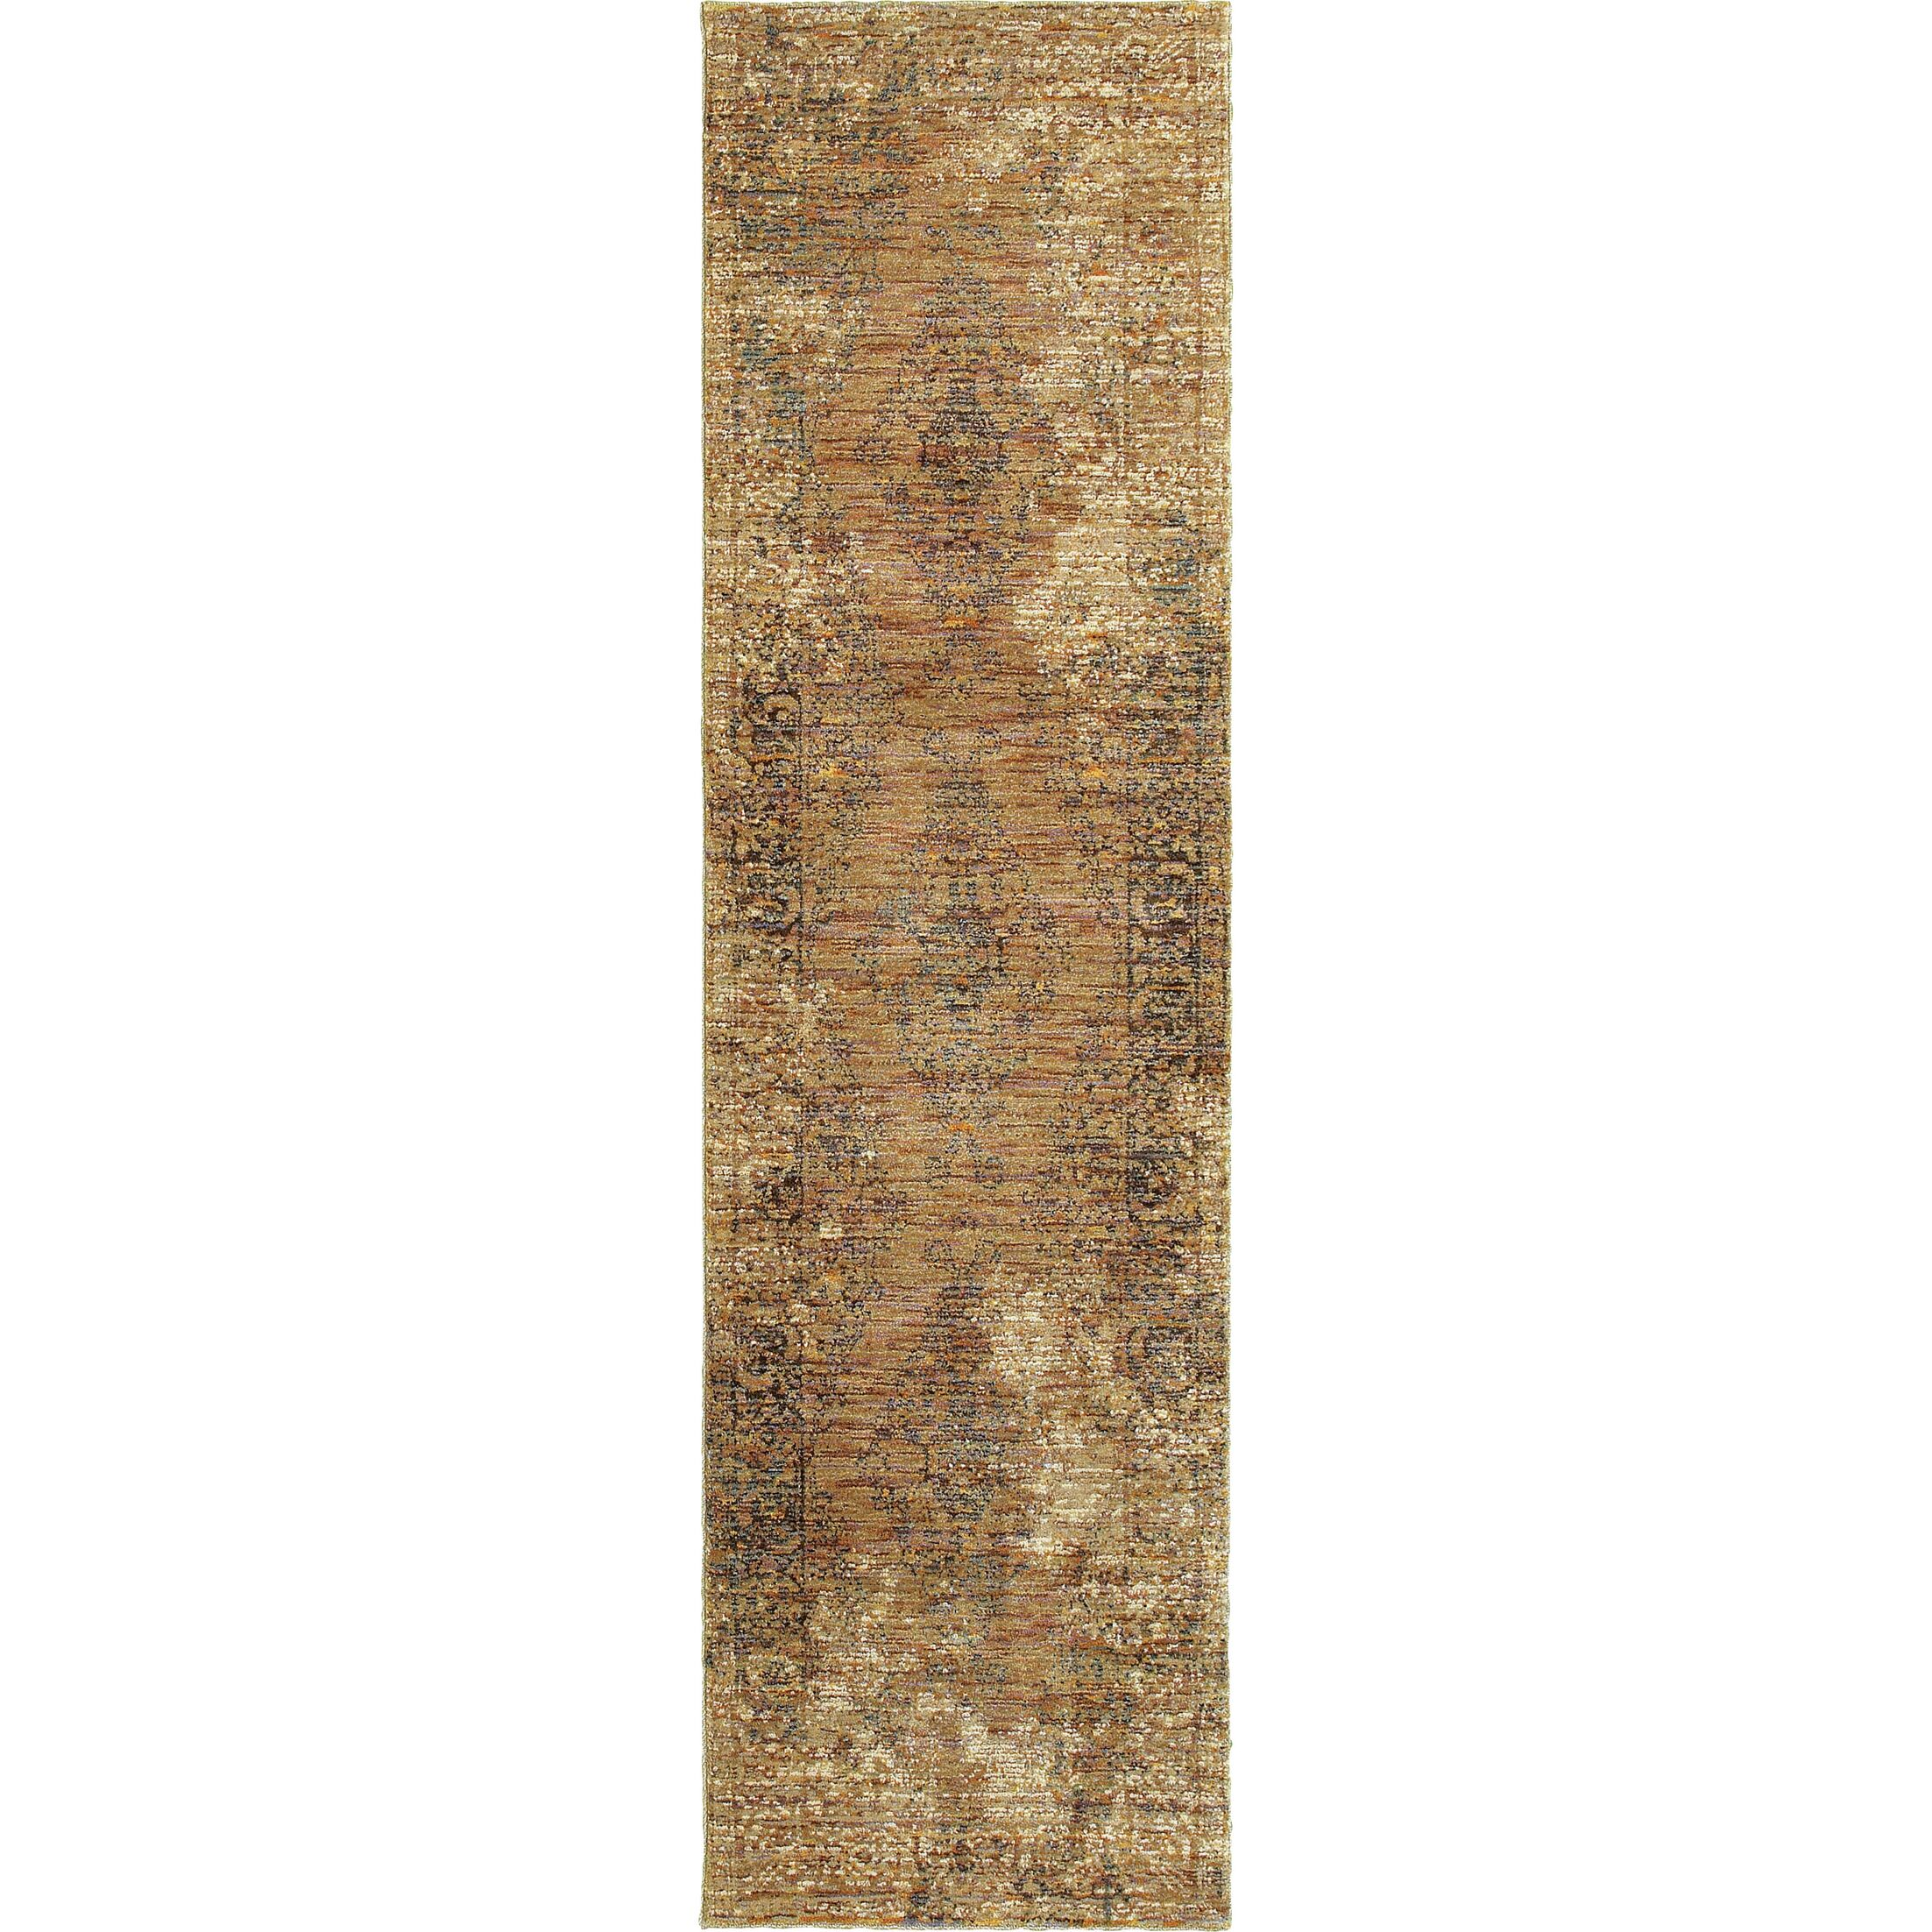 Rosalia Distressed Brown Area Rug Rug Size: Runner 2'2